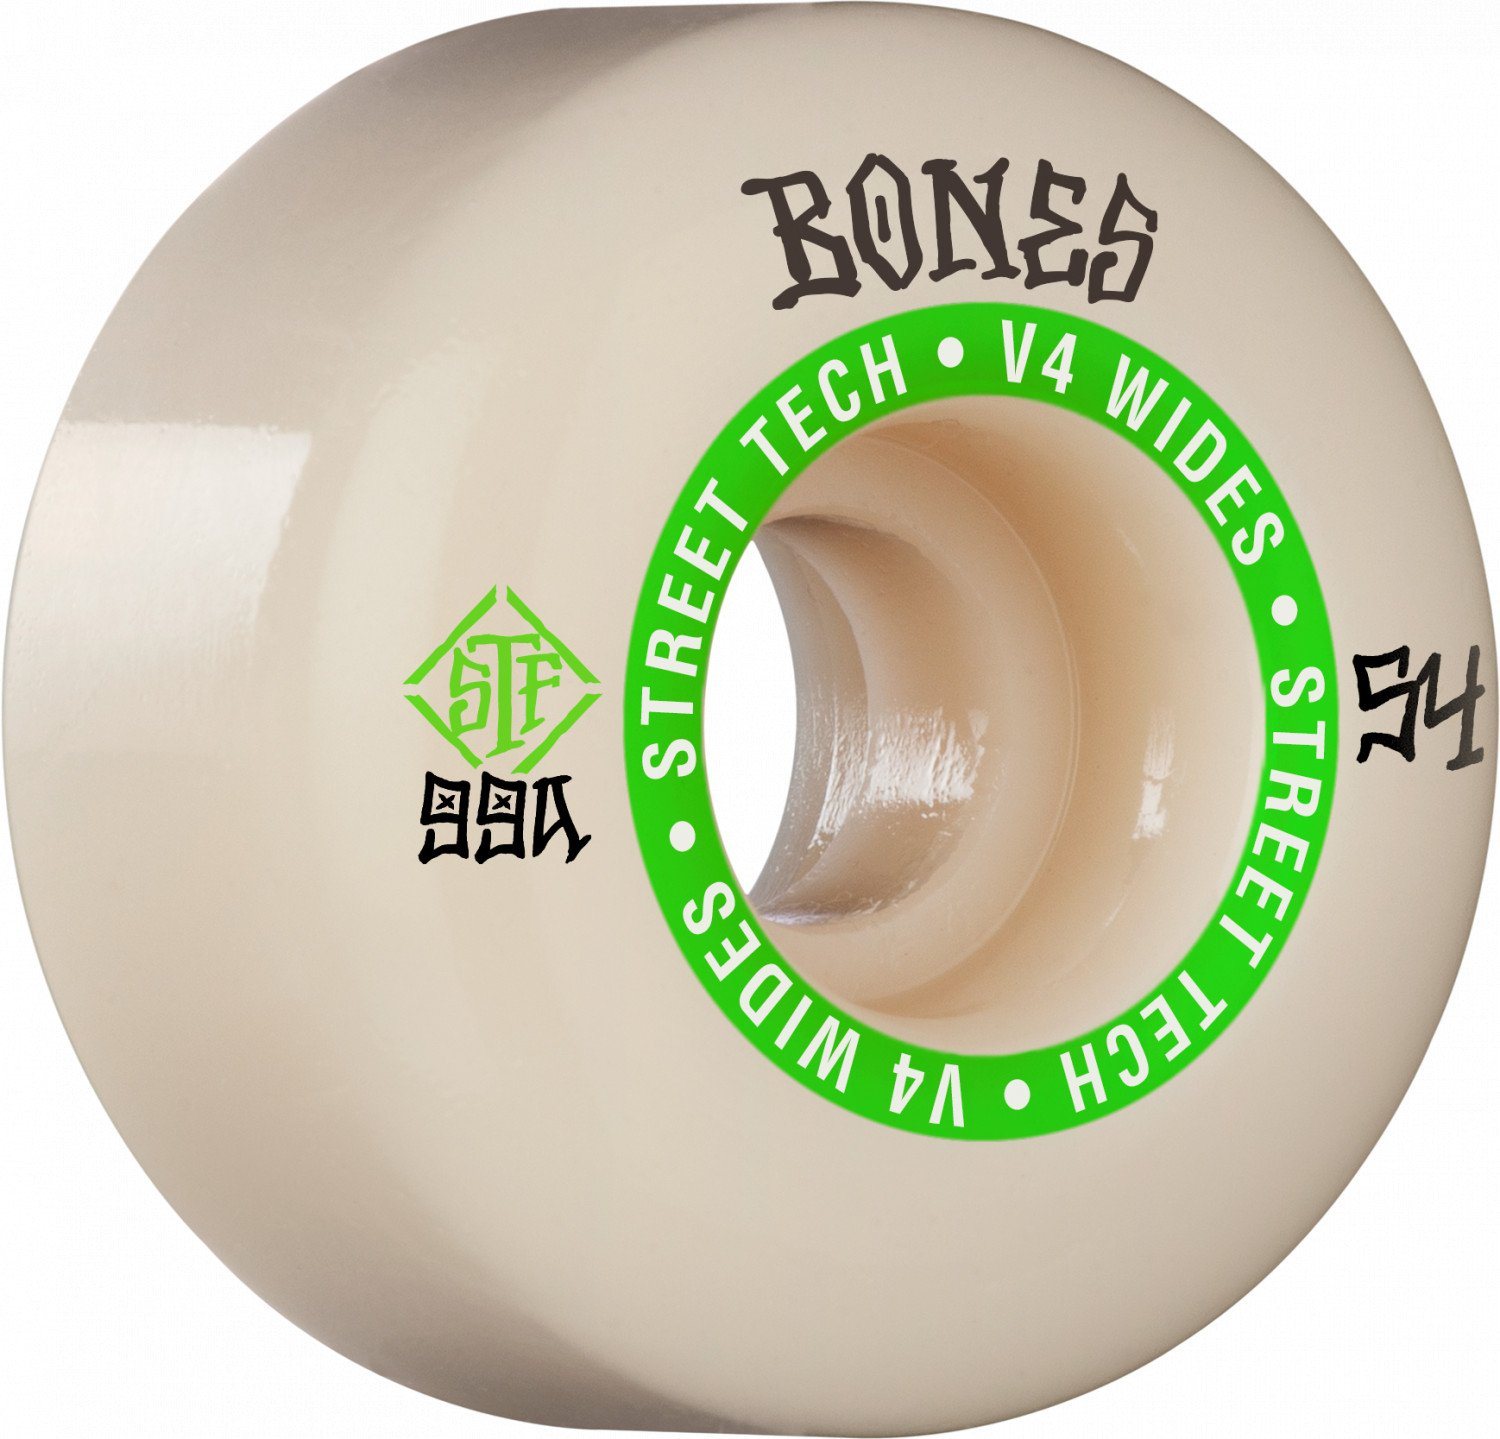 Bones STF V4 Ninety-Nines 54mm Wheel Set 99a